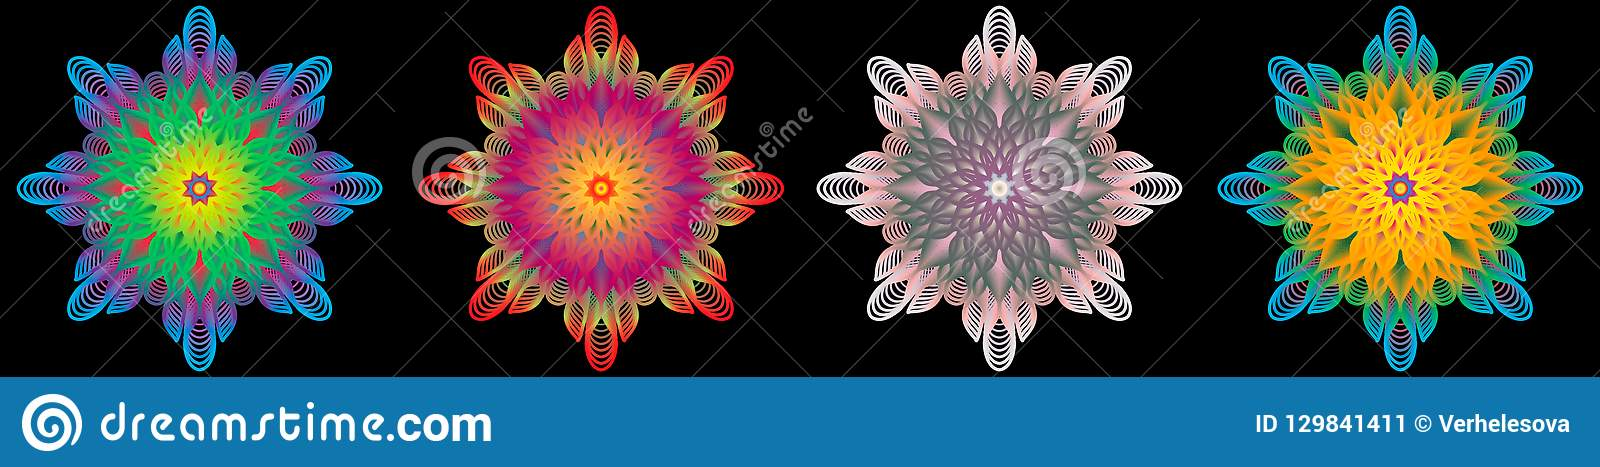 Multi colored oriental vintage pattern with arabesques floral elements, mandala